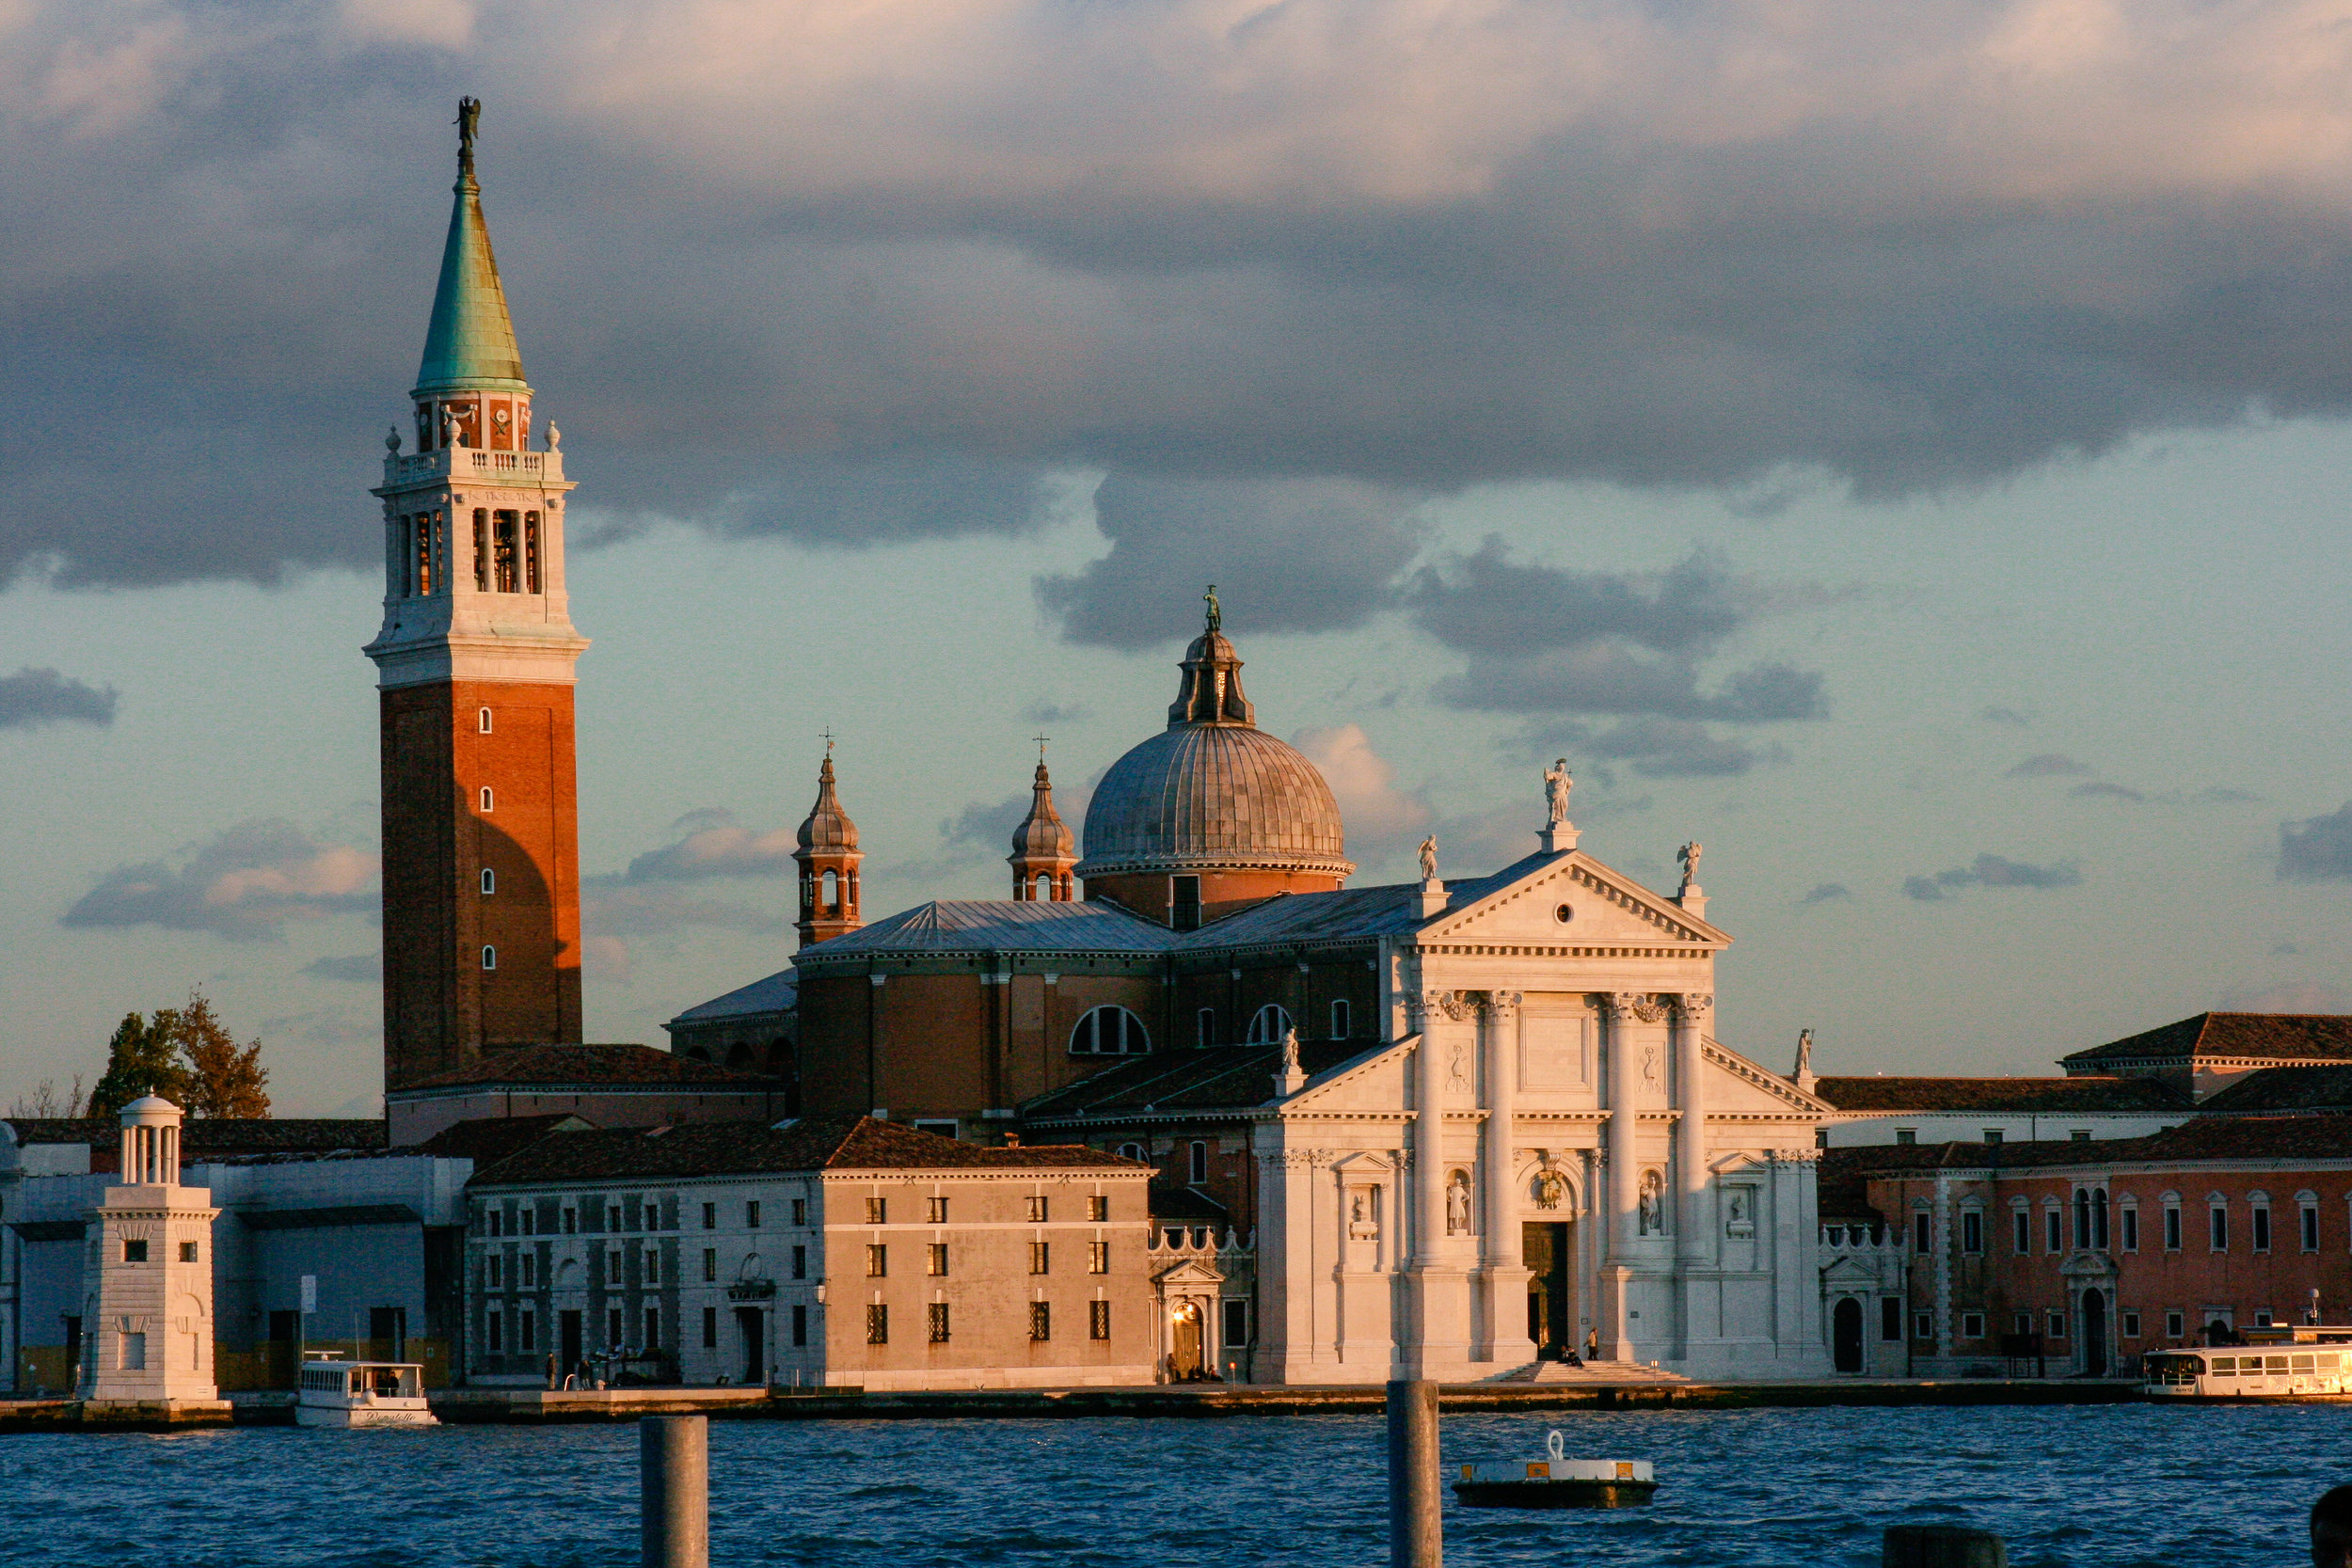 San Giorgio Maggiore is just a short vaporetto ride from San Marco, and the campanile is much more accessible.